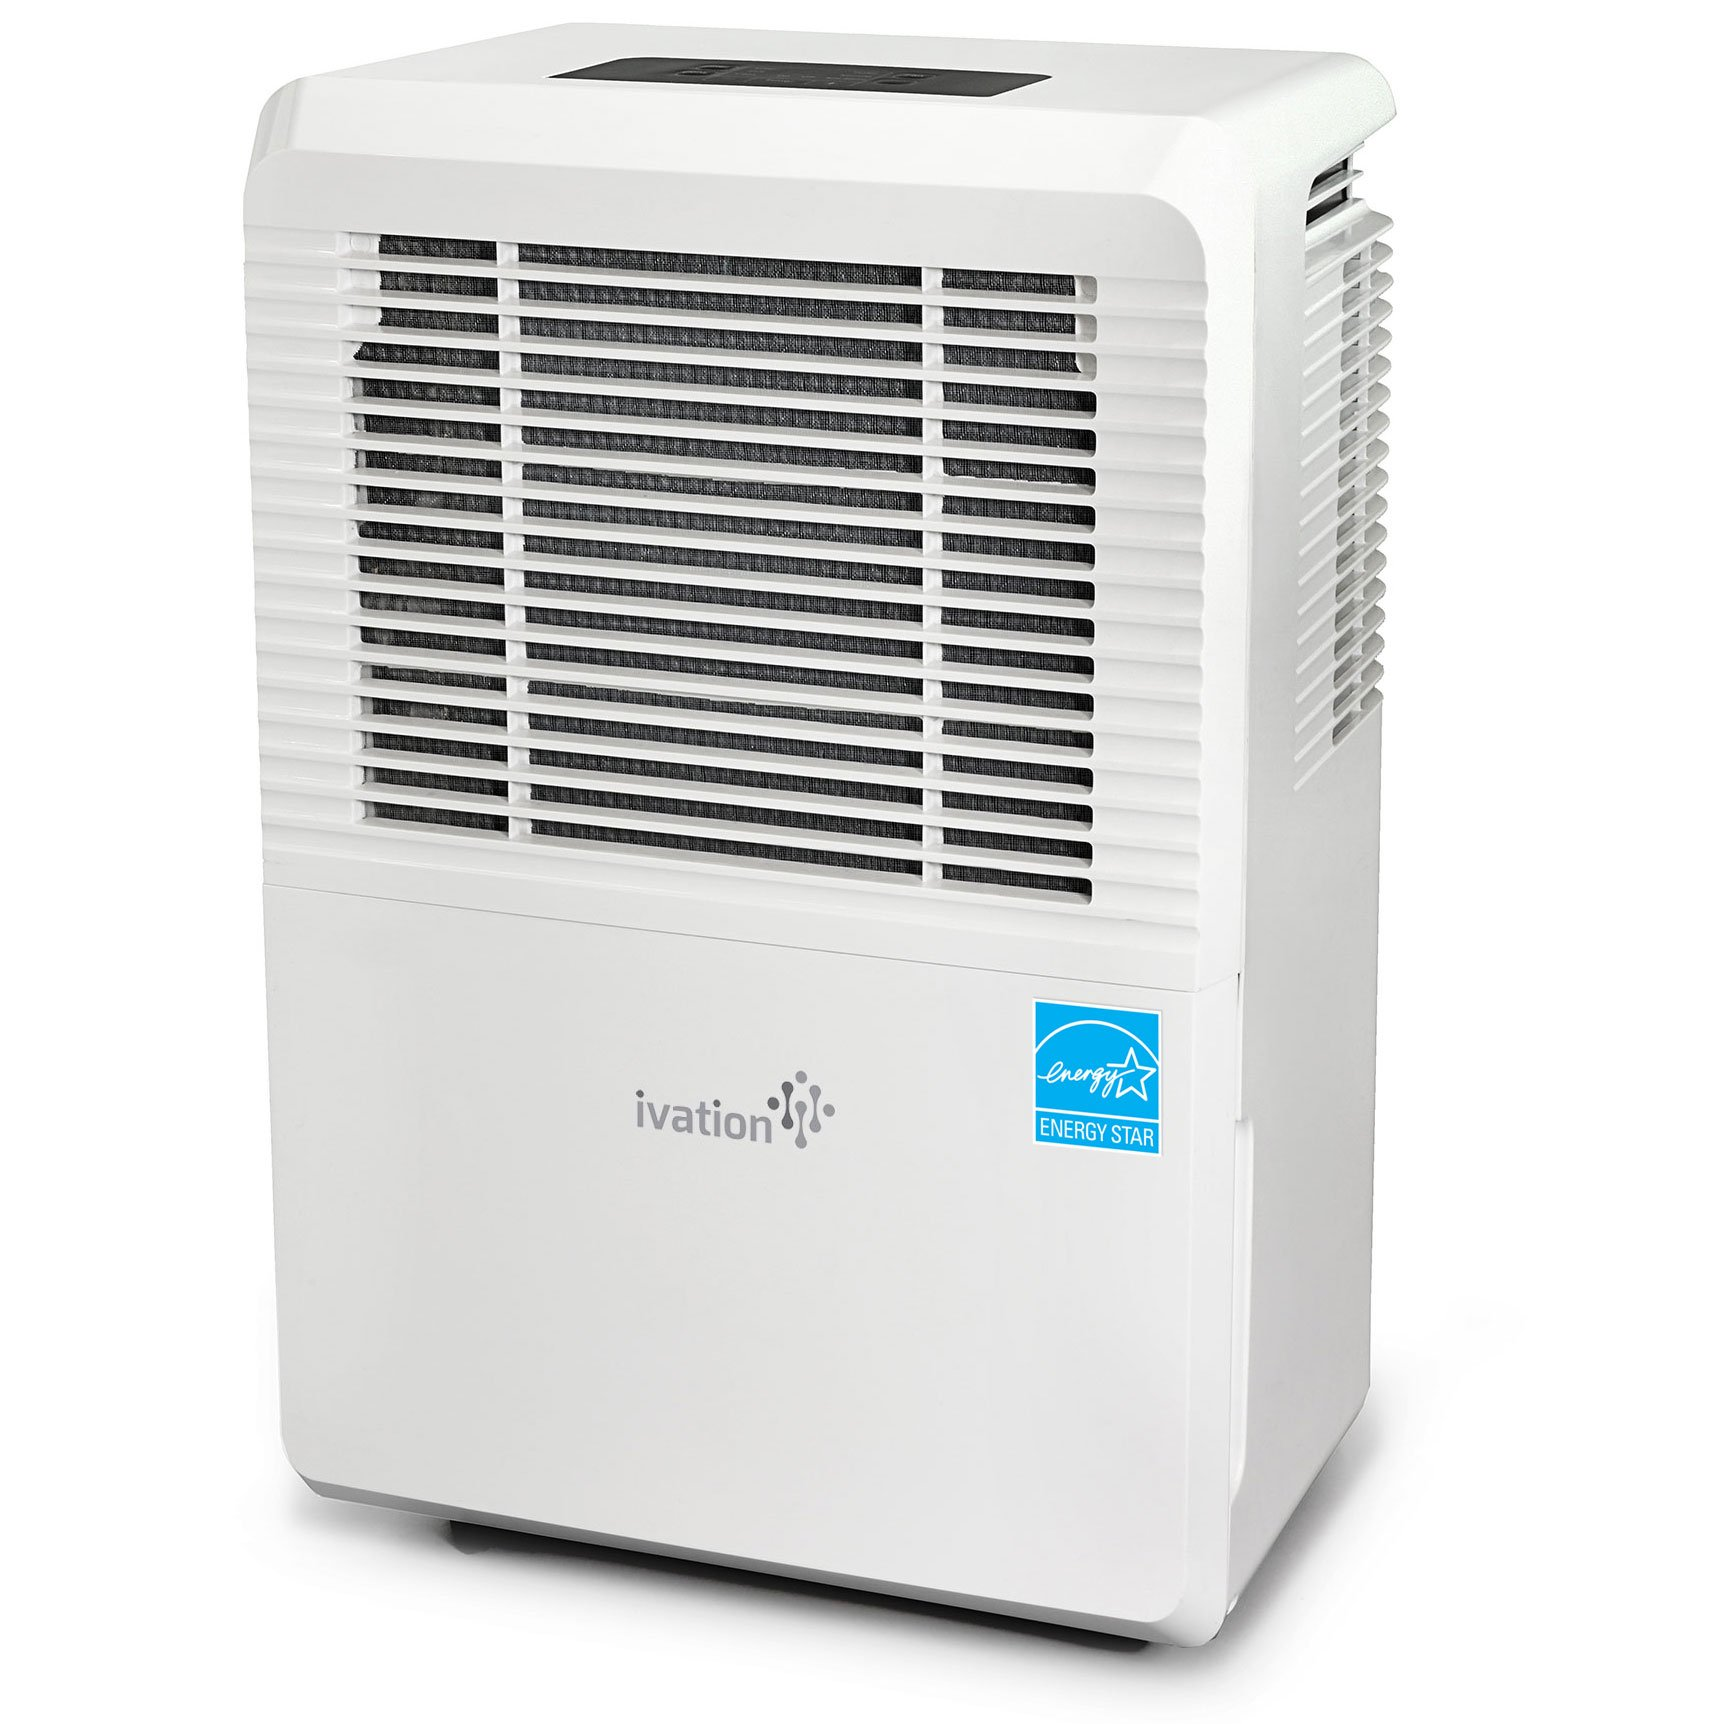 Ivation 70 Pint Energy Star Dehumidifier - Large-Capacity For Spaces Up To 4,500 Sq Ft - Includes Programmable Humidistat, Hose Connector, Auto Shutoff/Restart, Casters & Washable Air Filter, White,  by Ivation